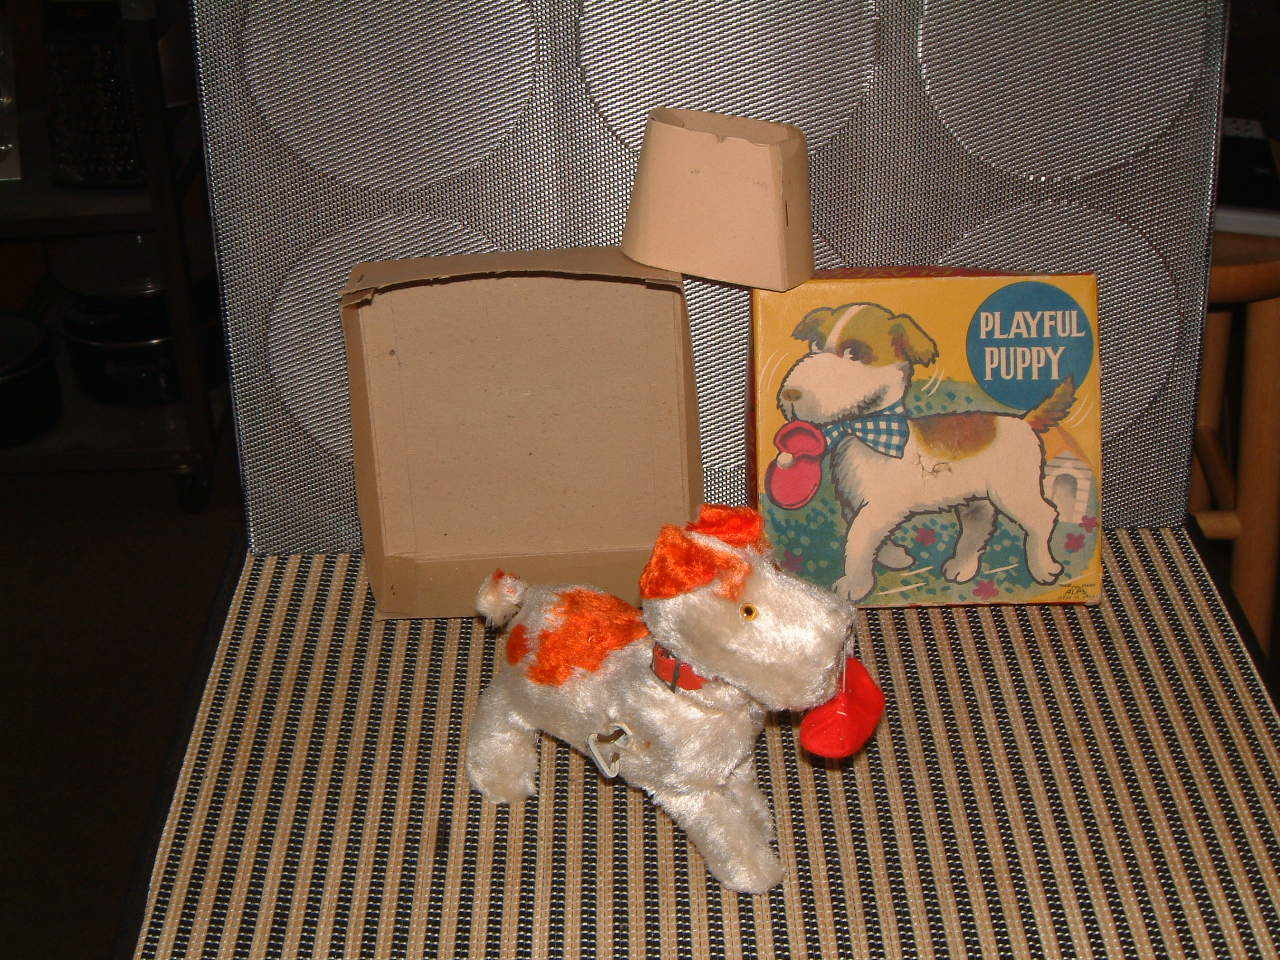 ALPS MECHANICAL (CLOCKWORK) PLAYFUL PUPPY. PERFECTLY WORKING IN ORIGINAL BOX